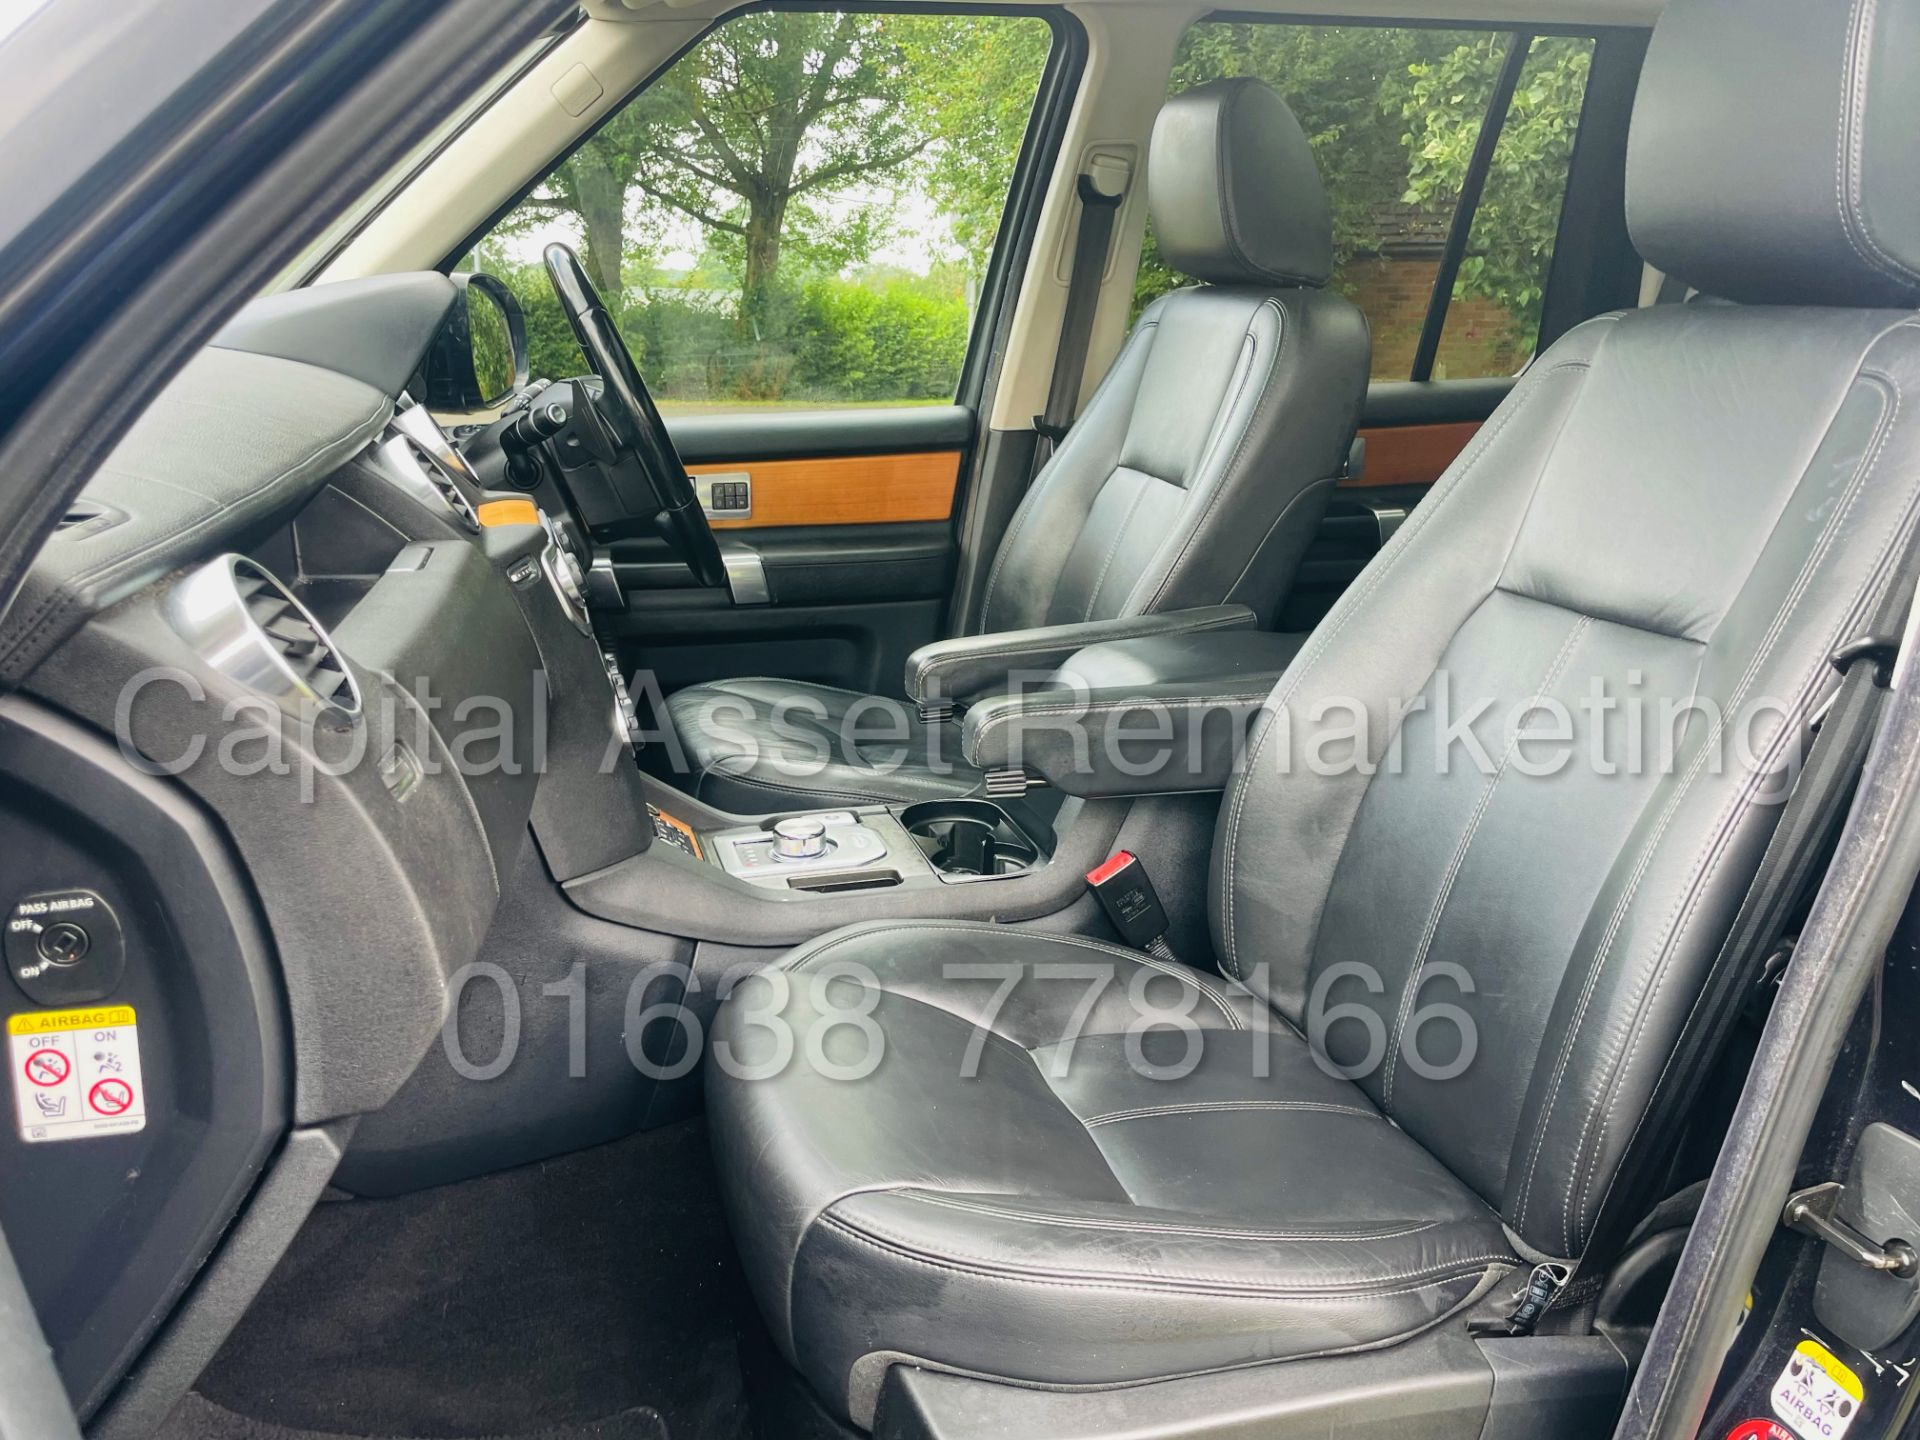 LAND ROVER DISCOVERY 4 *HSE* 7 SEATER SUV (2014 - NEW MODEL) '3.0 SDV6 - 255 BHP - 8 SPEED AUTO' - Image 26 of 61